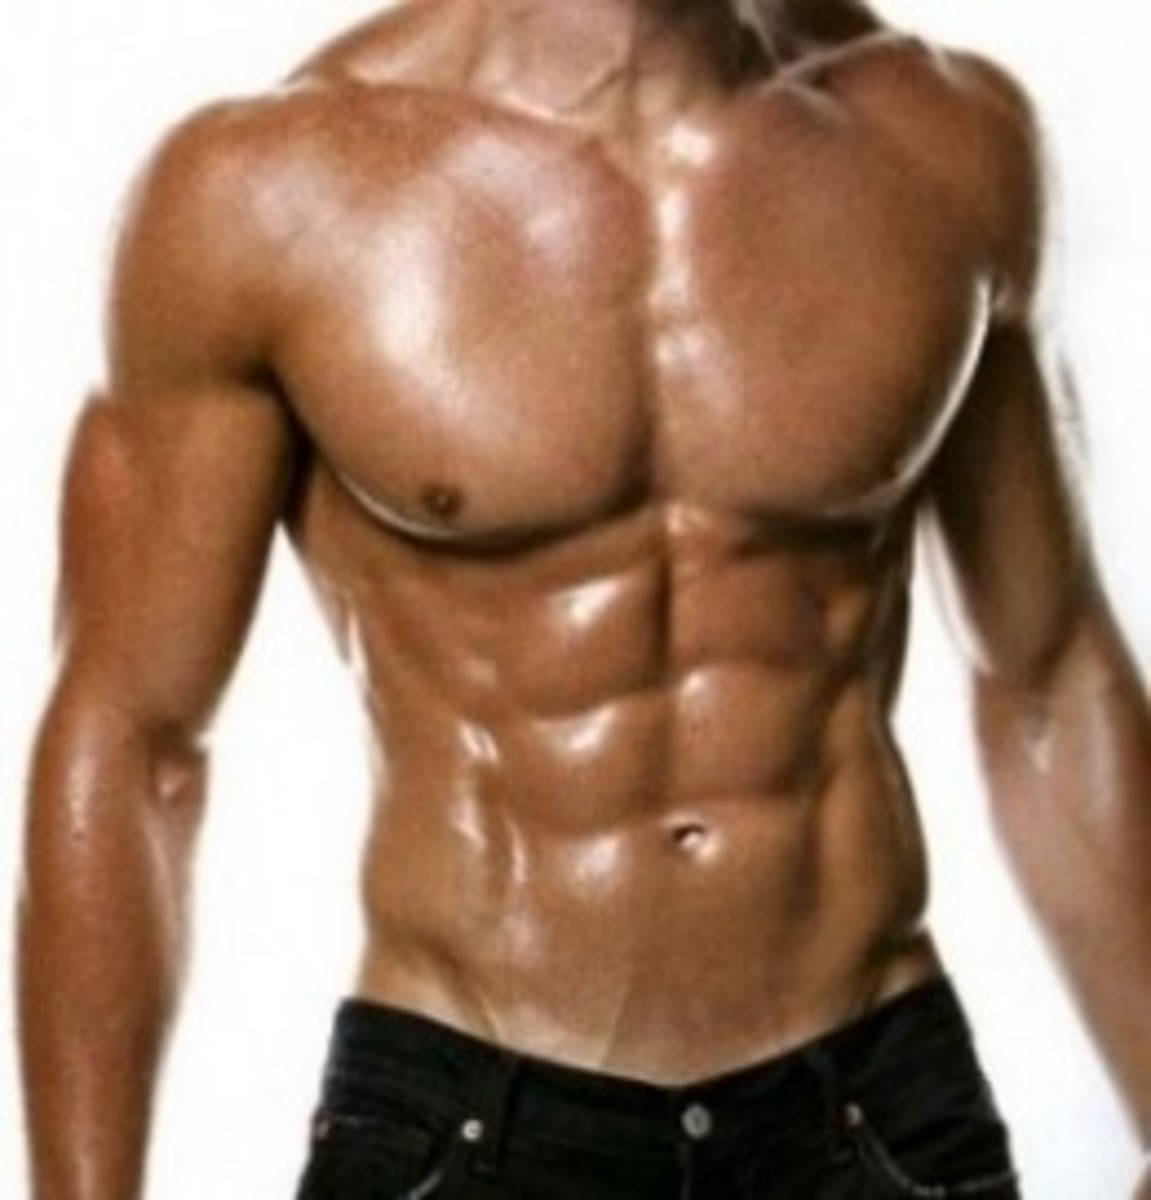 How to do a proper Ab workout routine? Mistakes that prevent people from getting Six pack abs